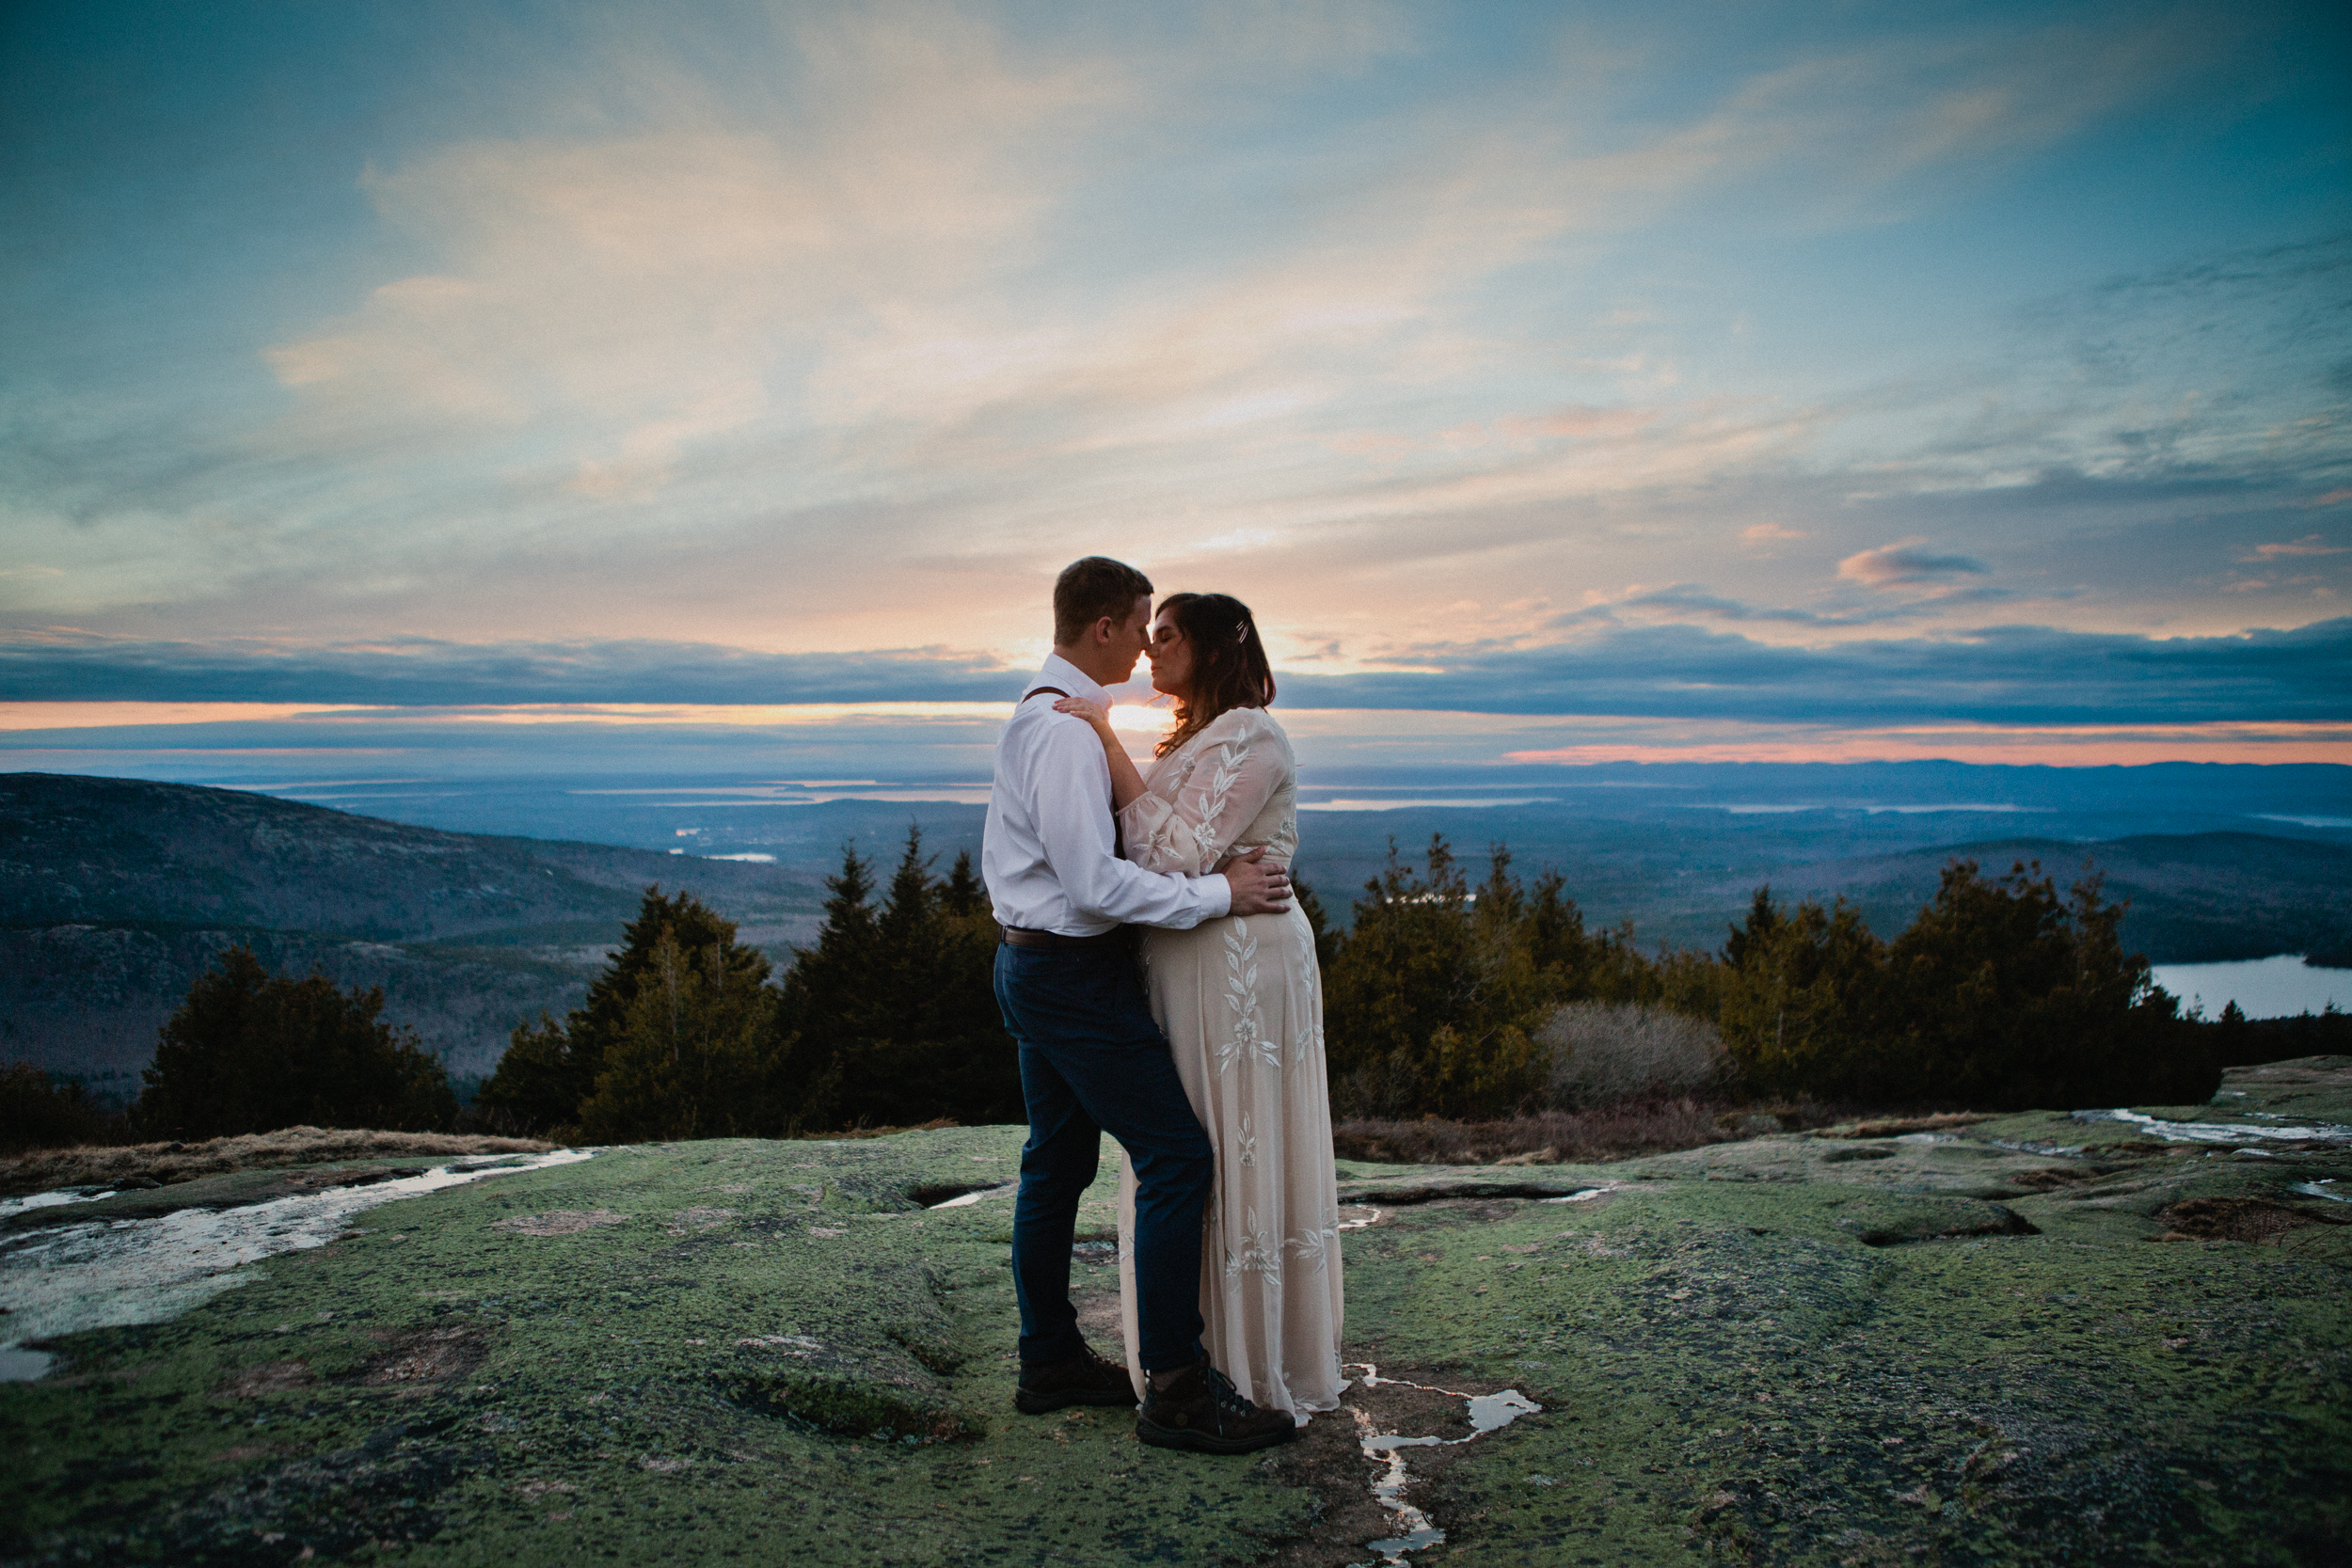 Acadia-Elopement-Photos-442.jpg